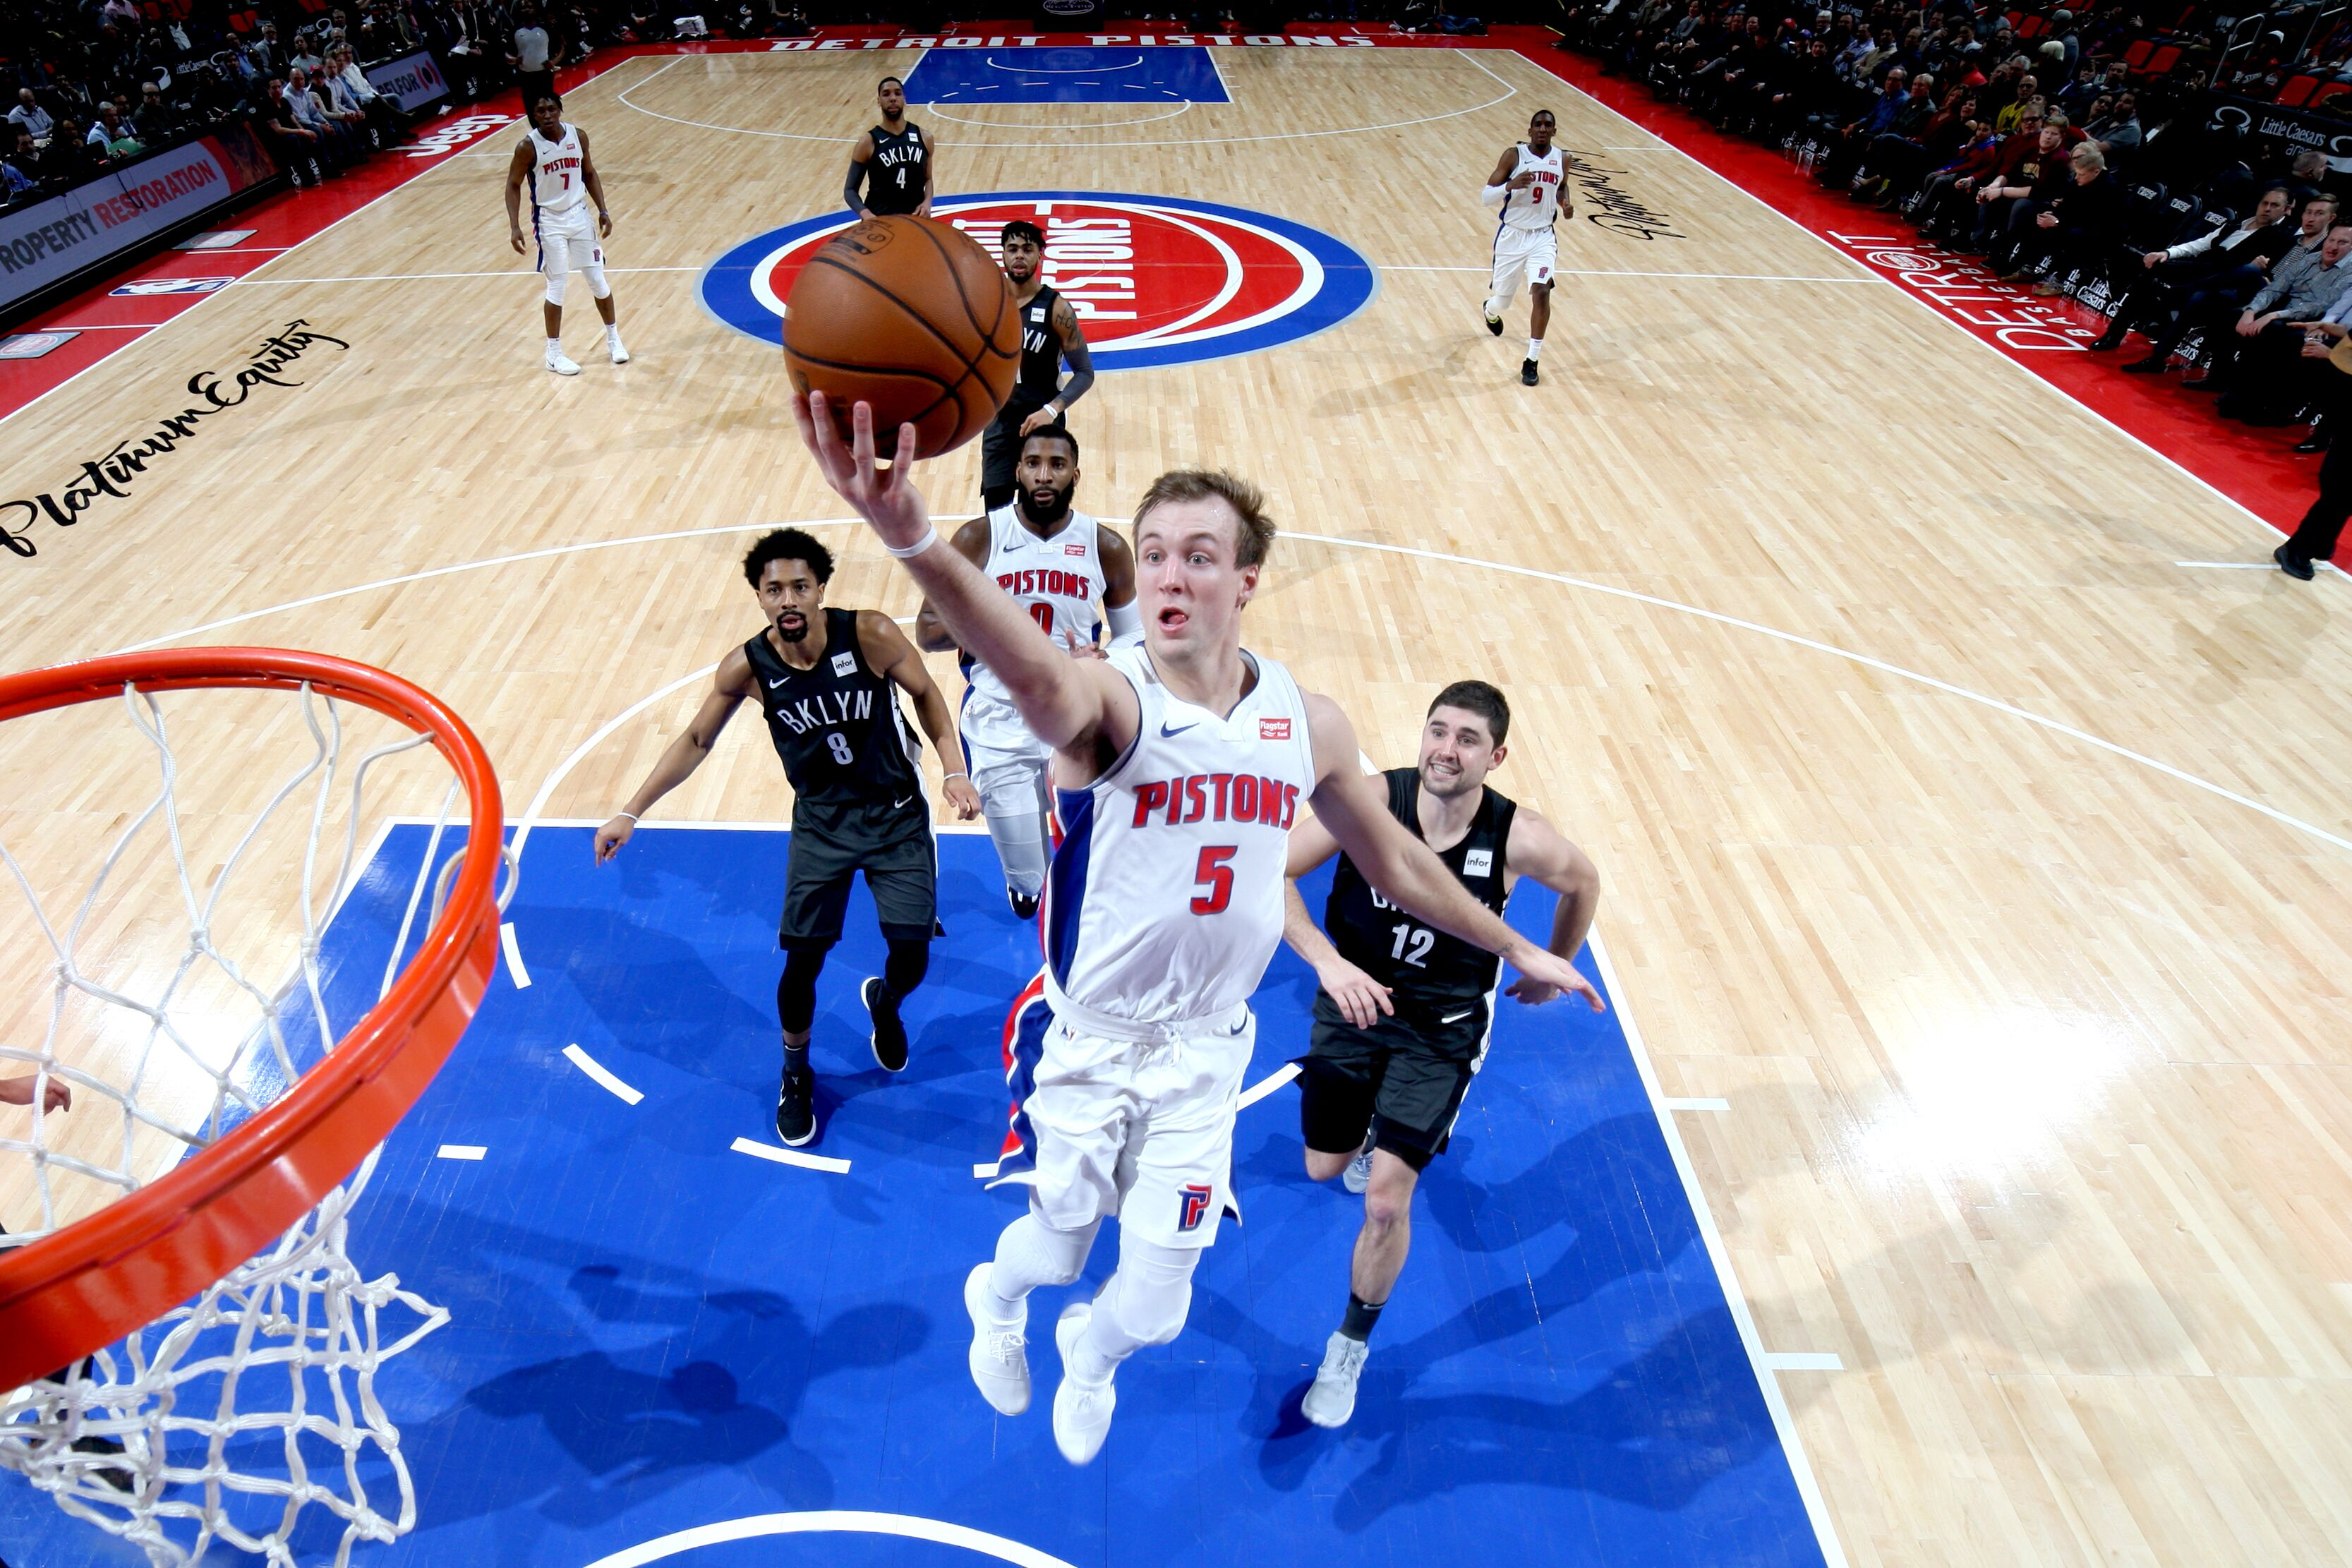 Detroit Pistons: Back court depth could be key to success